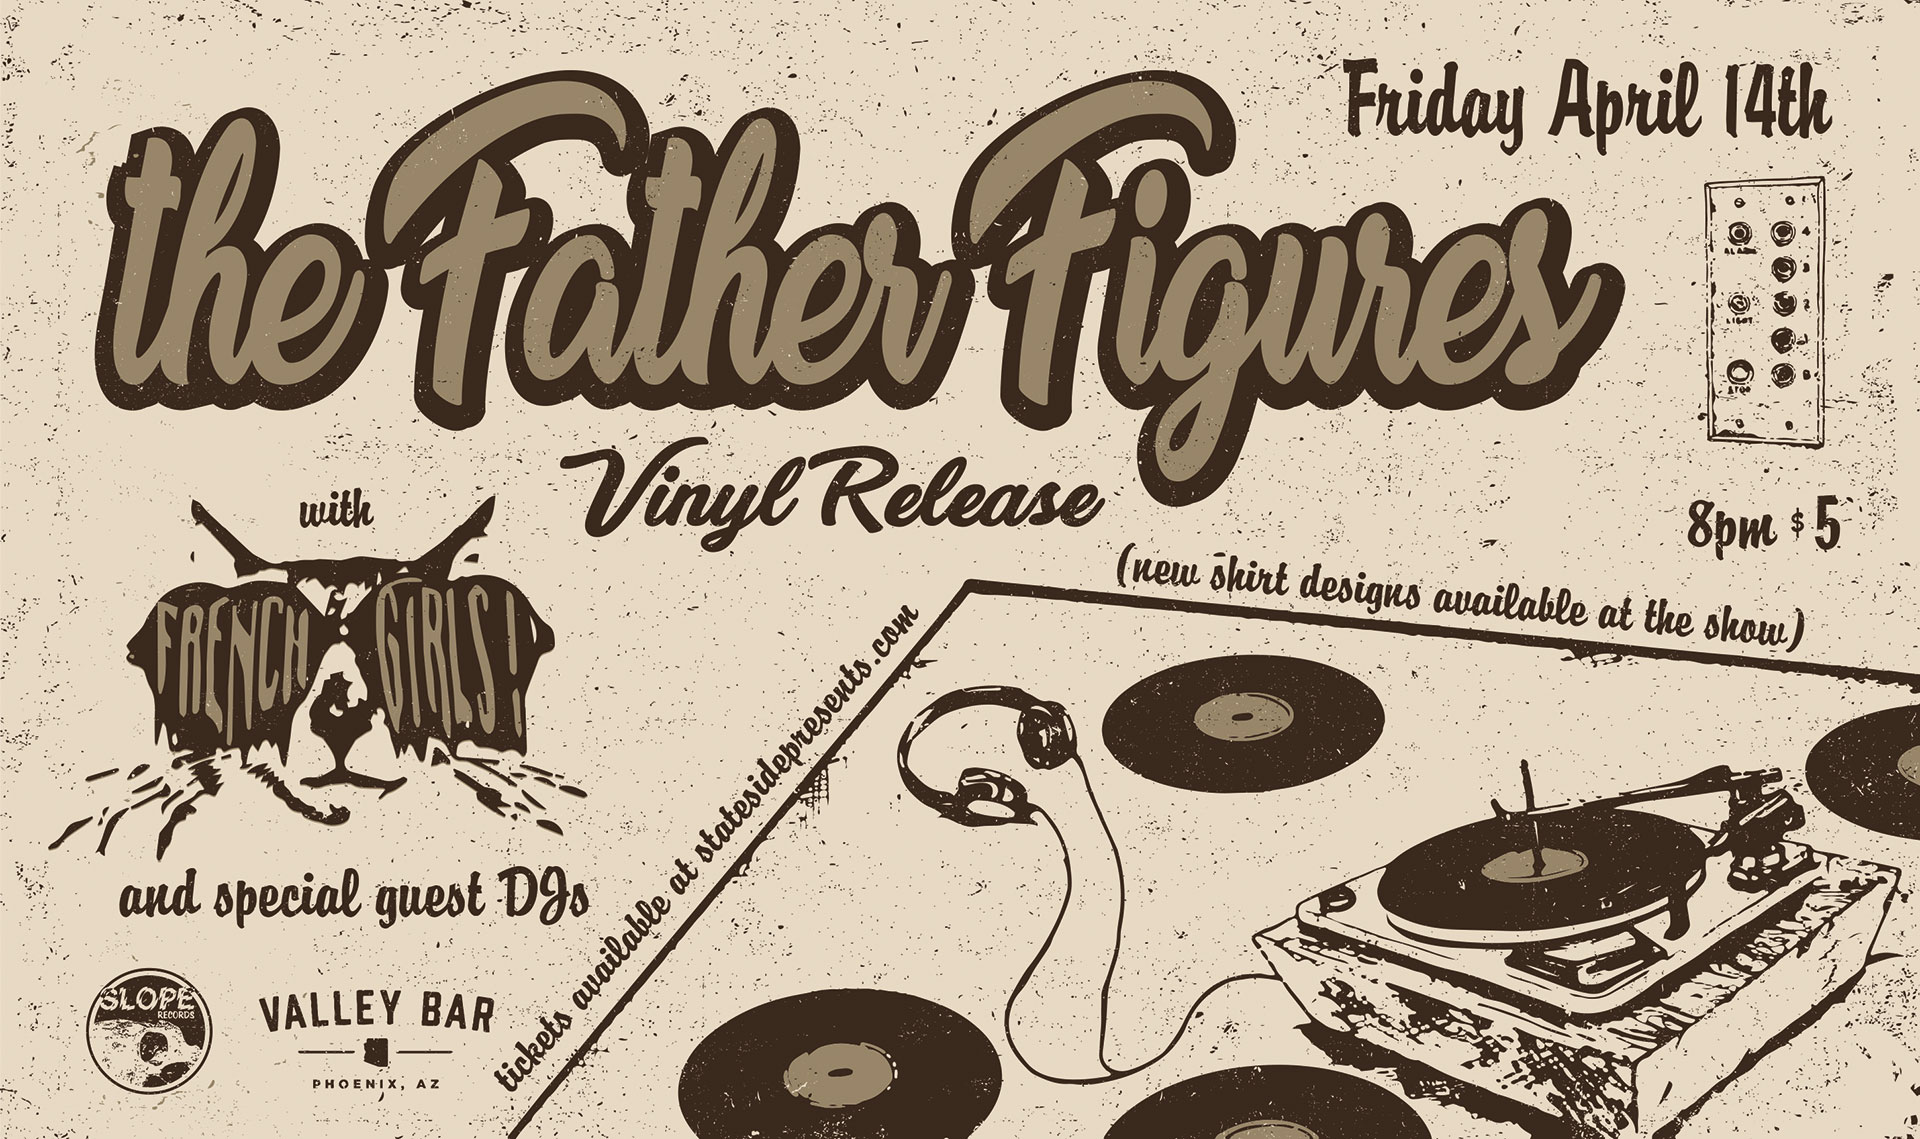 The Father Figures - Heavy Lifting Vinyl Release - Slope Records